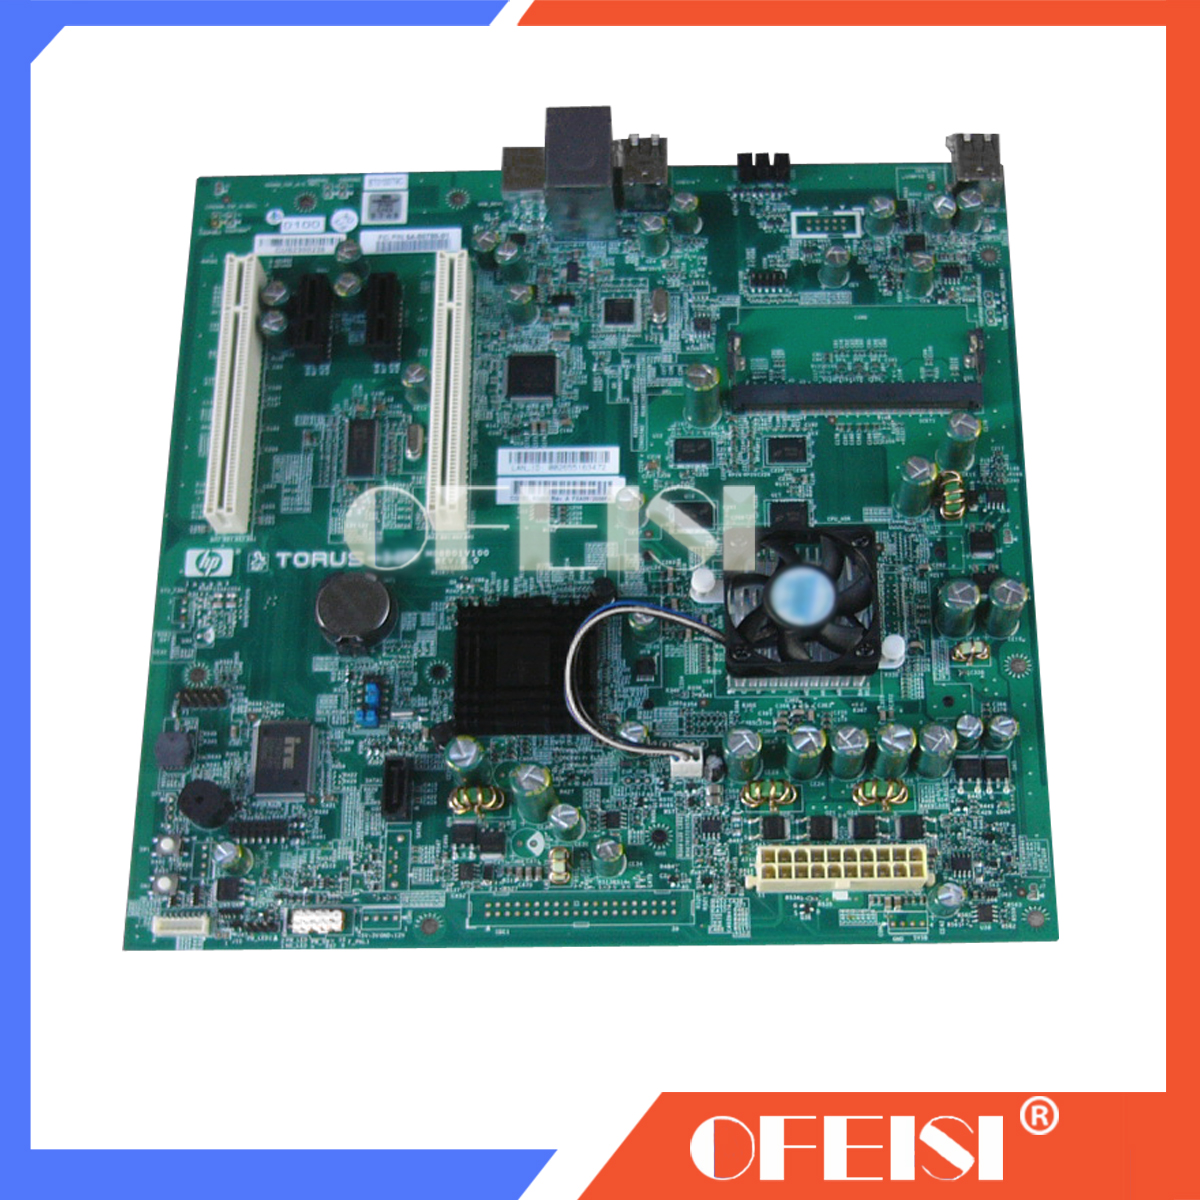 Original New For HP DesignJet Z6200 T7100 T7200 Formatter Board PCA CQ109-67020 CQ109-67048 CQ107-60005 image